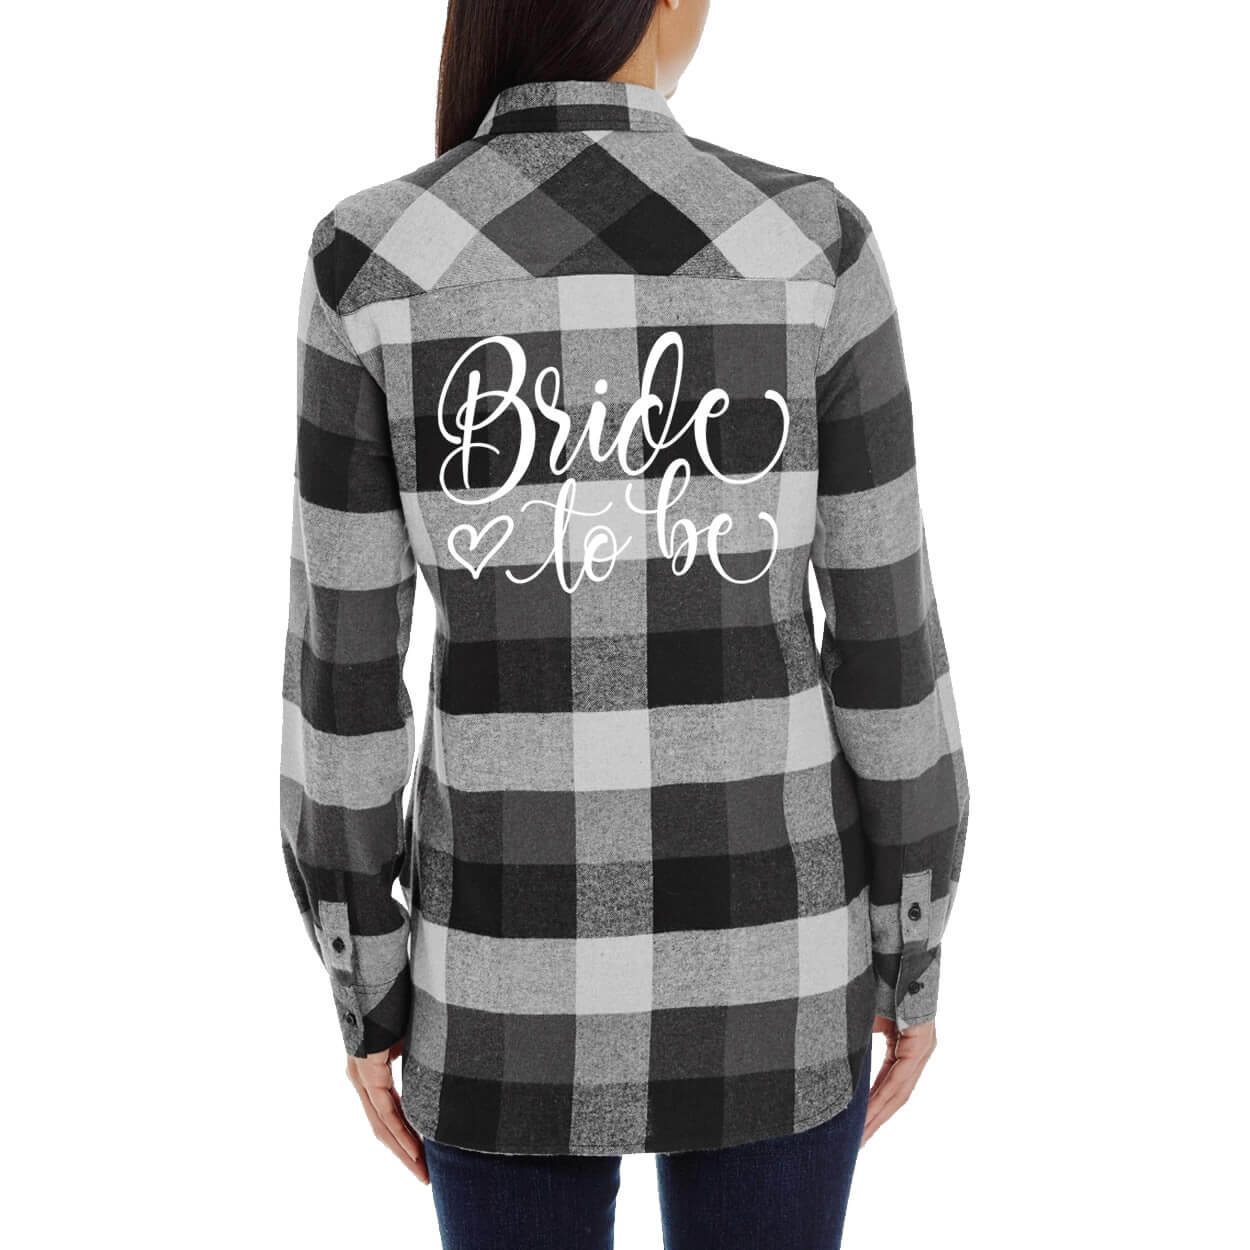 Bride To Be Flannel Shirt Personalized Brides